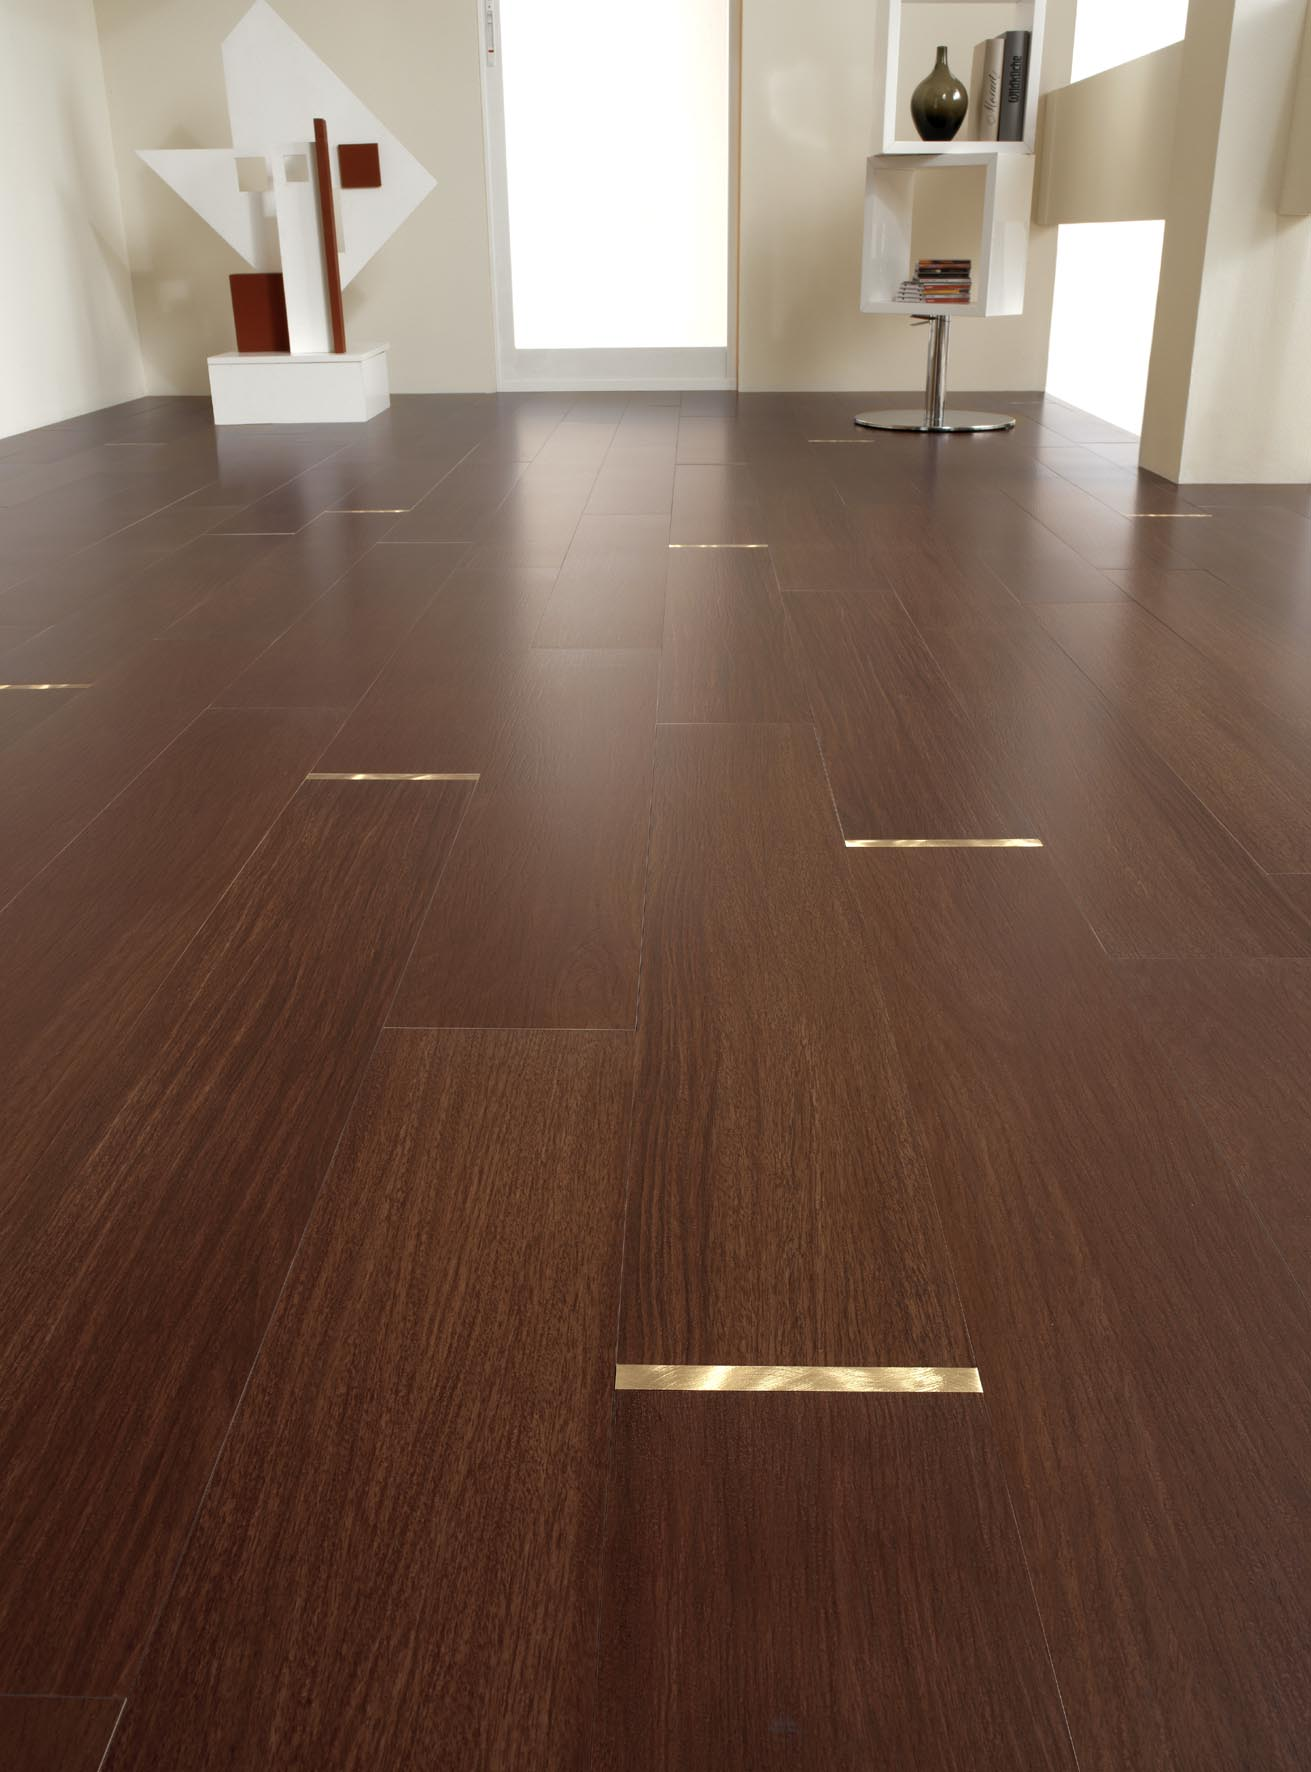 Wood Tiles Sydney Latest Timber Look Floor Tiles Wood